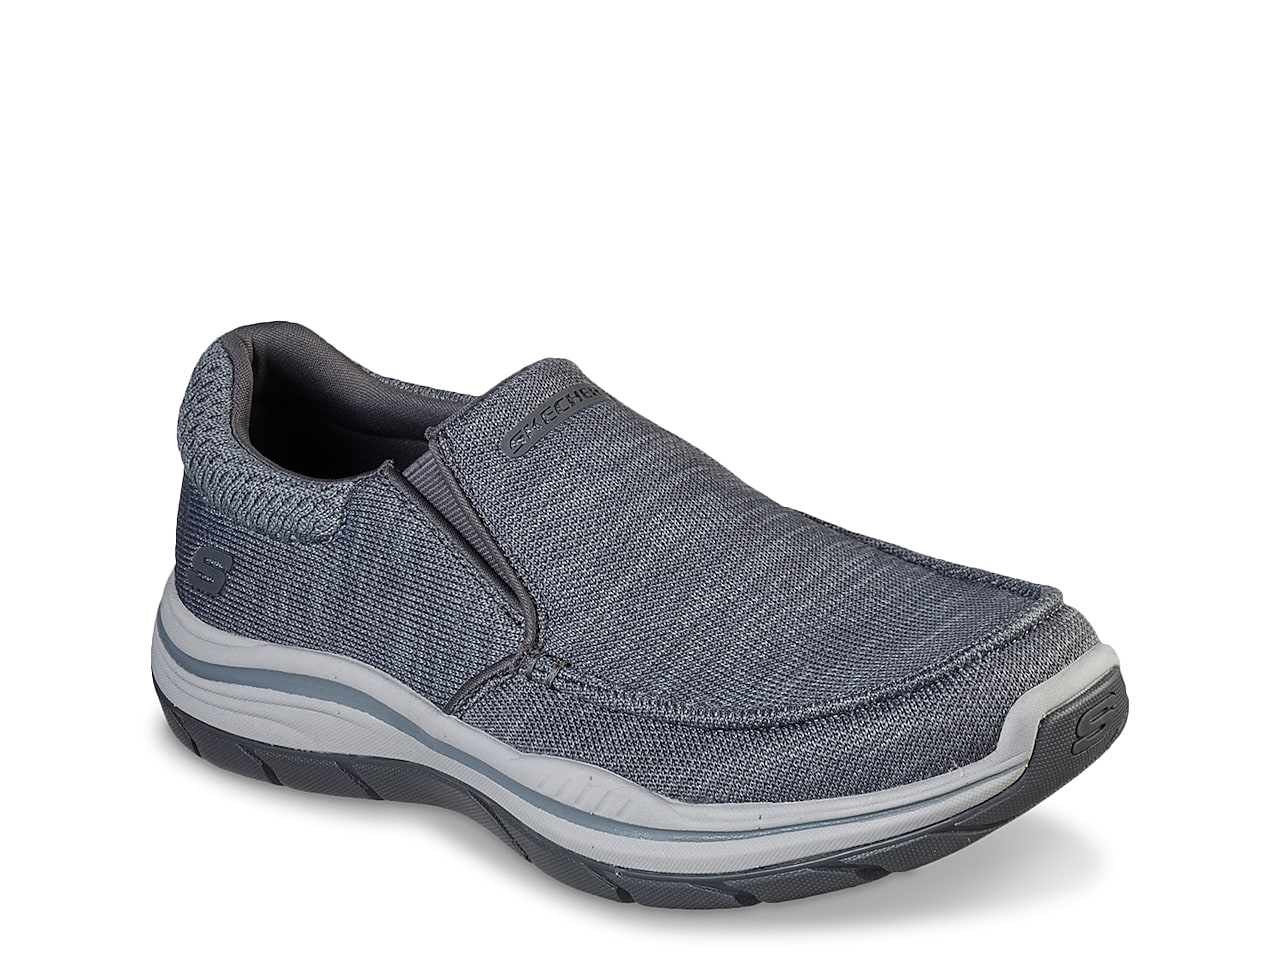 Skechers Relaxed Fit Expected 2.0 Andro Slip-On